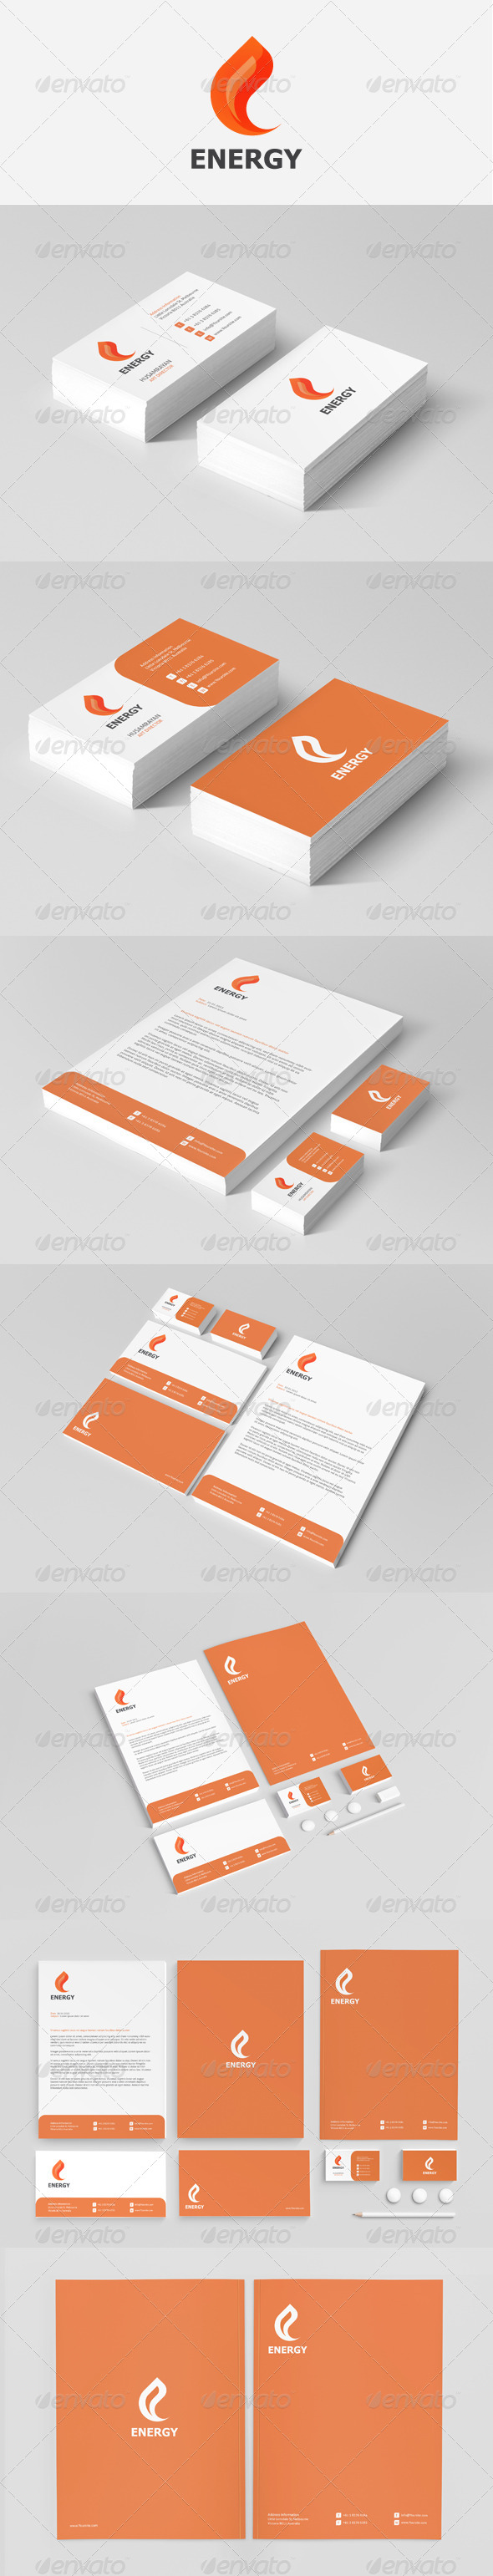 GraphicRiver Energy Stationery 3895142